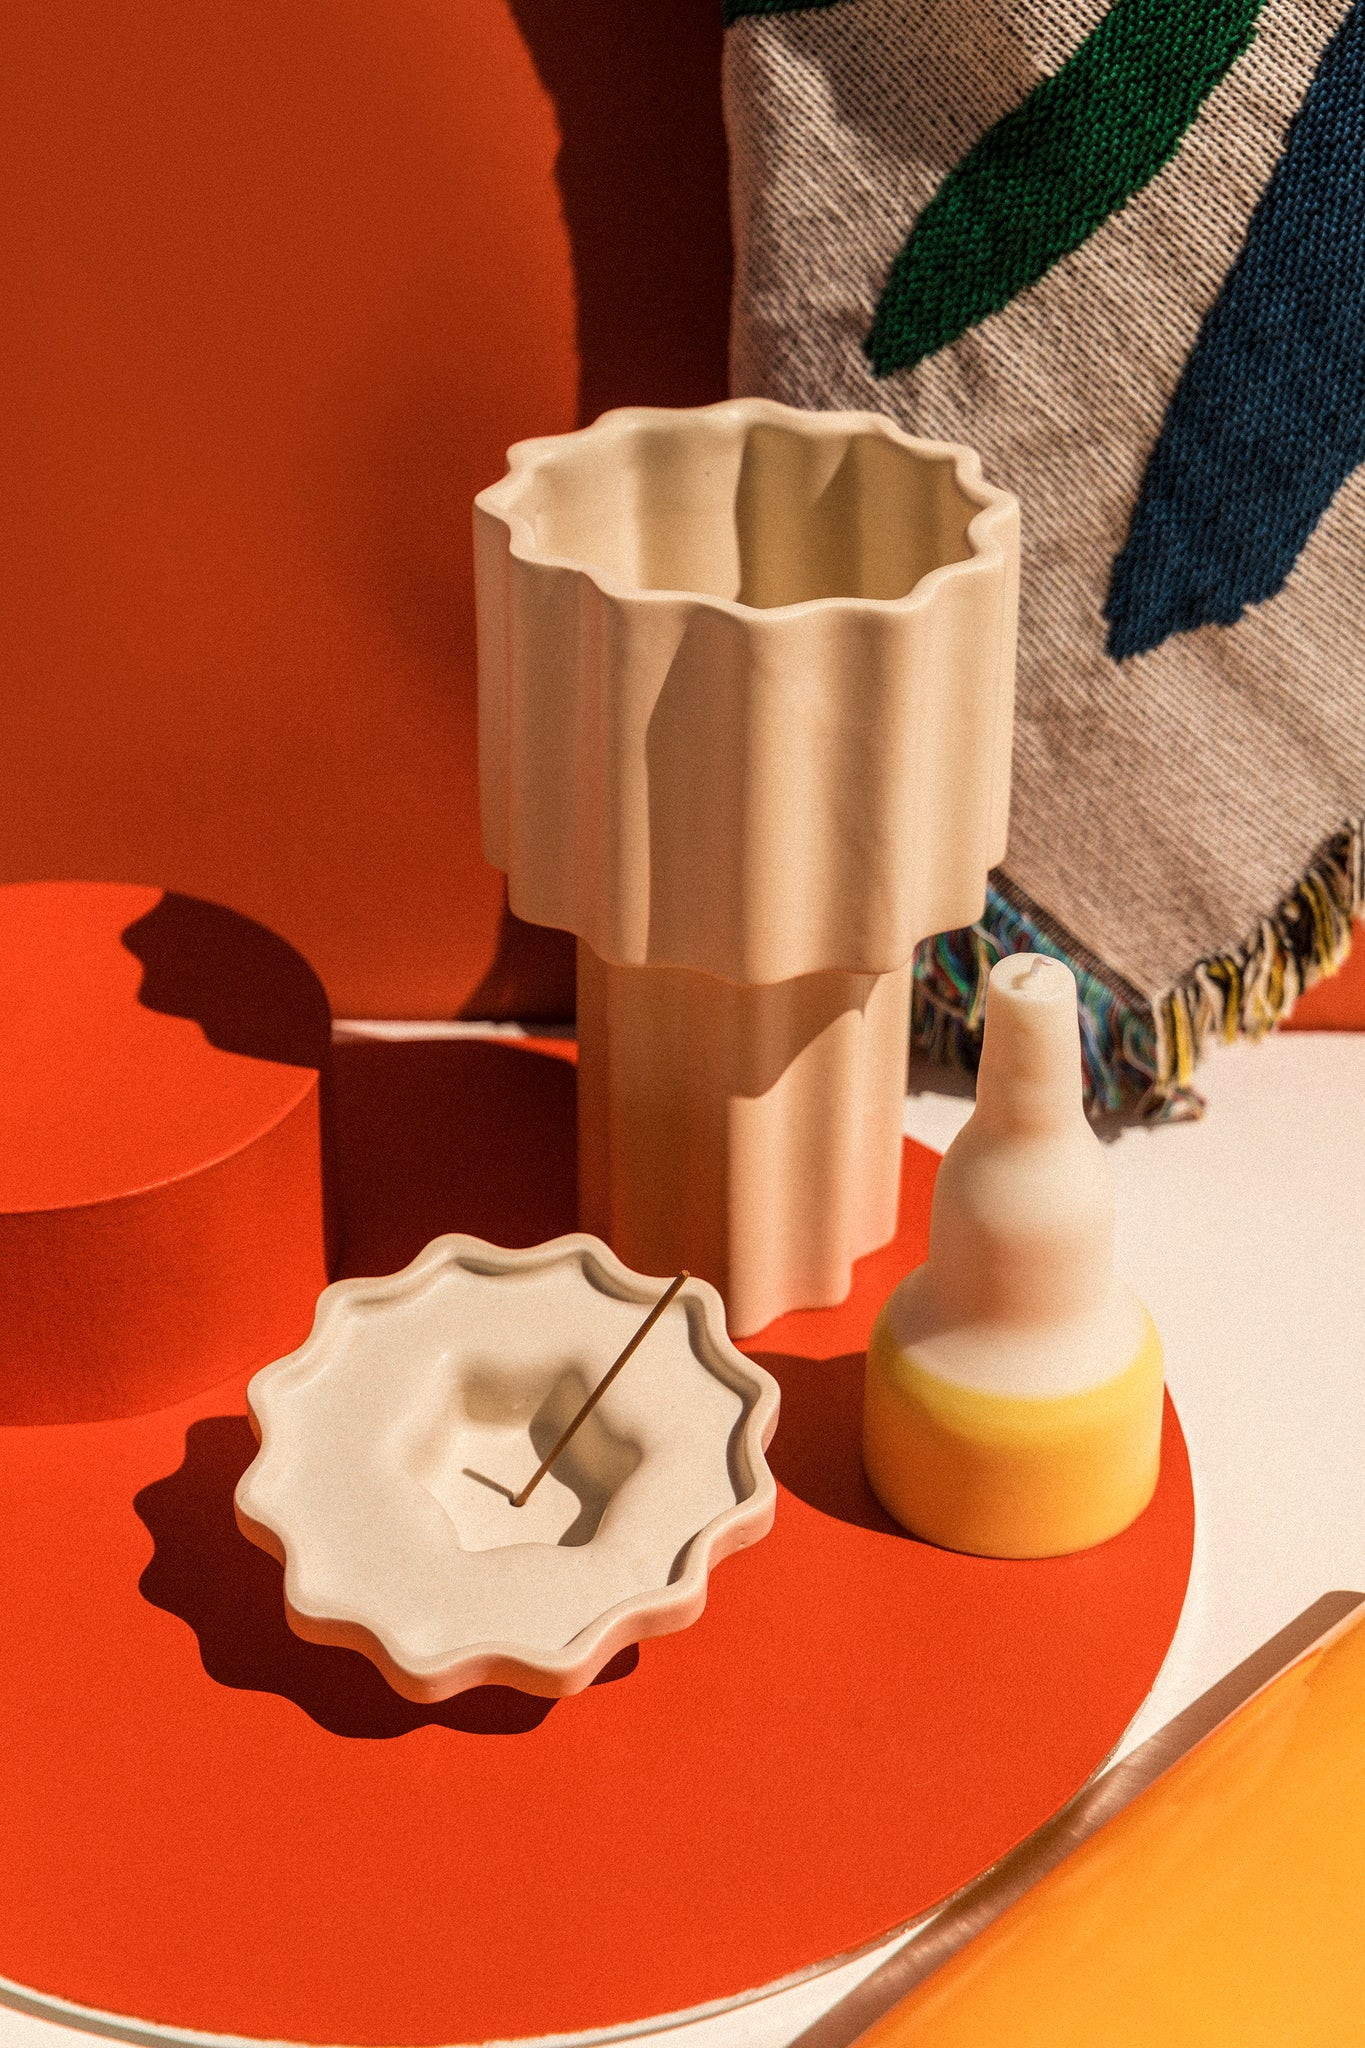 Kelly Thompson Still life photography and styling for Makers' Mrkt Christmas 2020 Melbourne